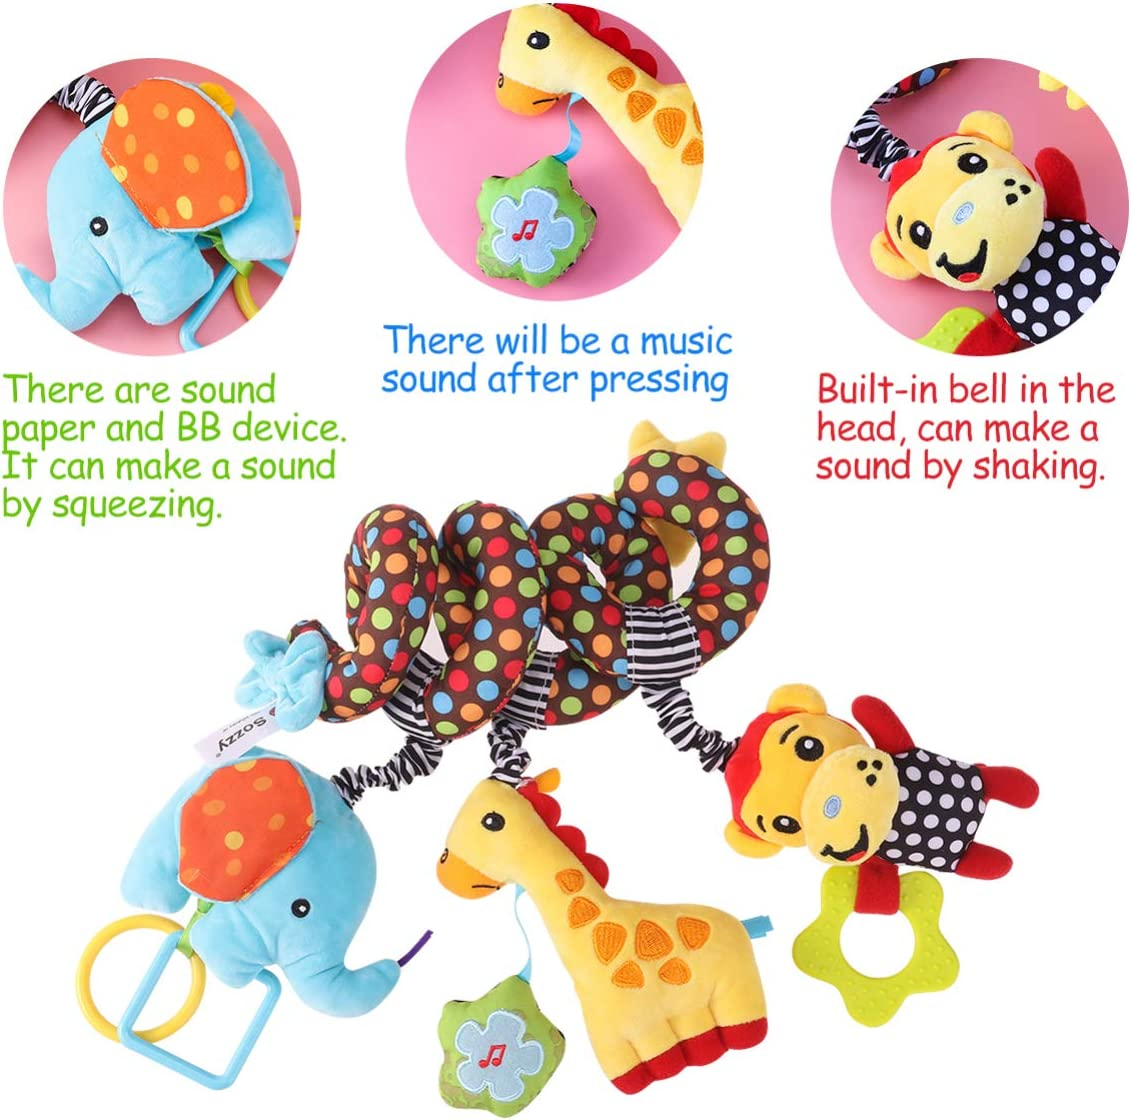 Toyvian Spiral Bed Stroller Toy Lovely Monkey Elephant Educational Plush Toy for Kid Baby Infant